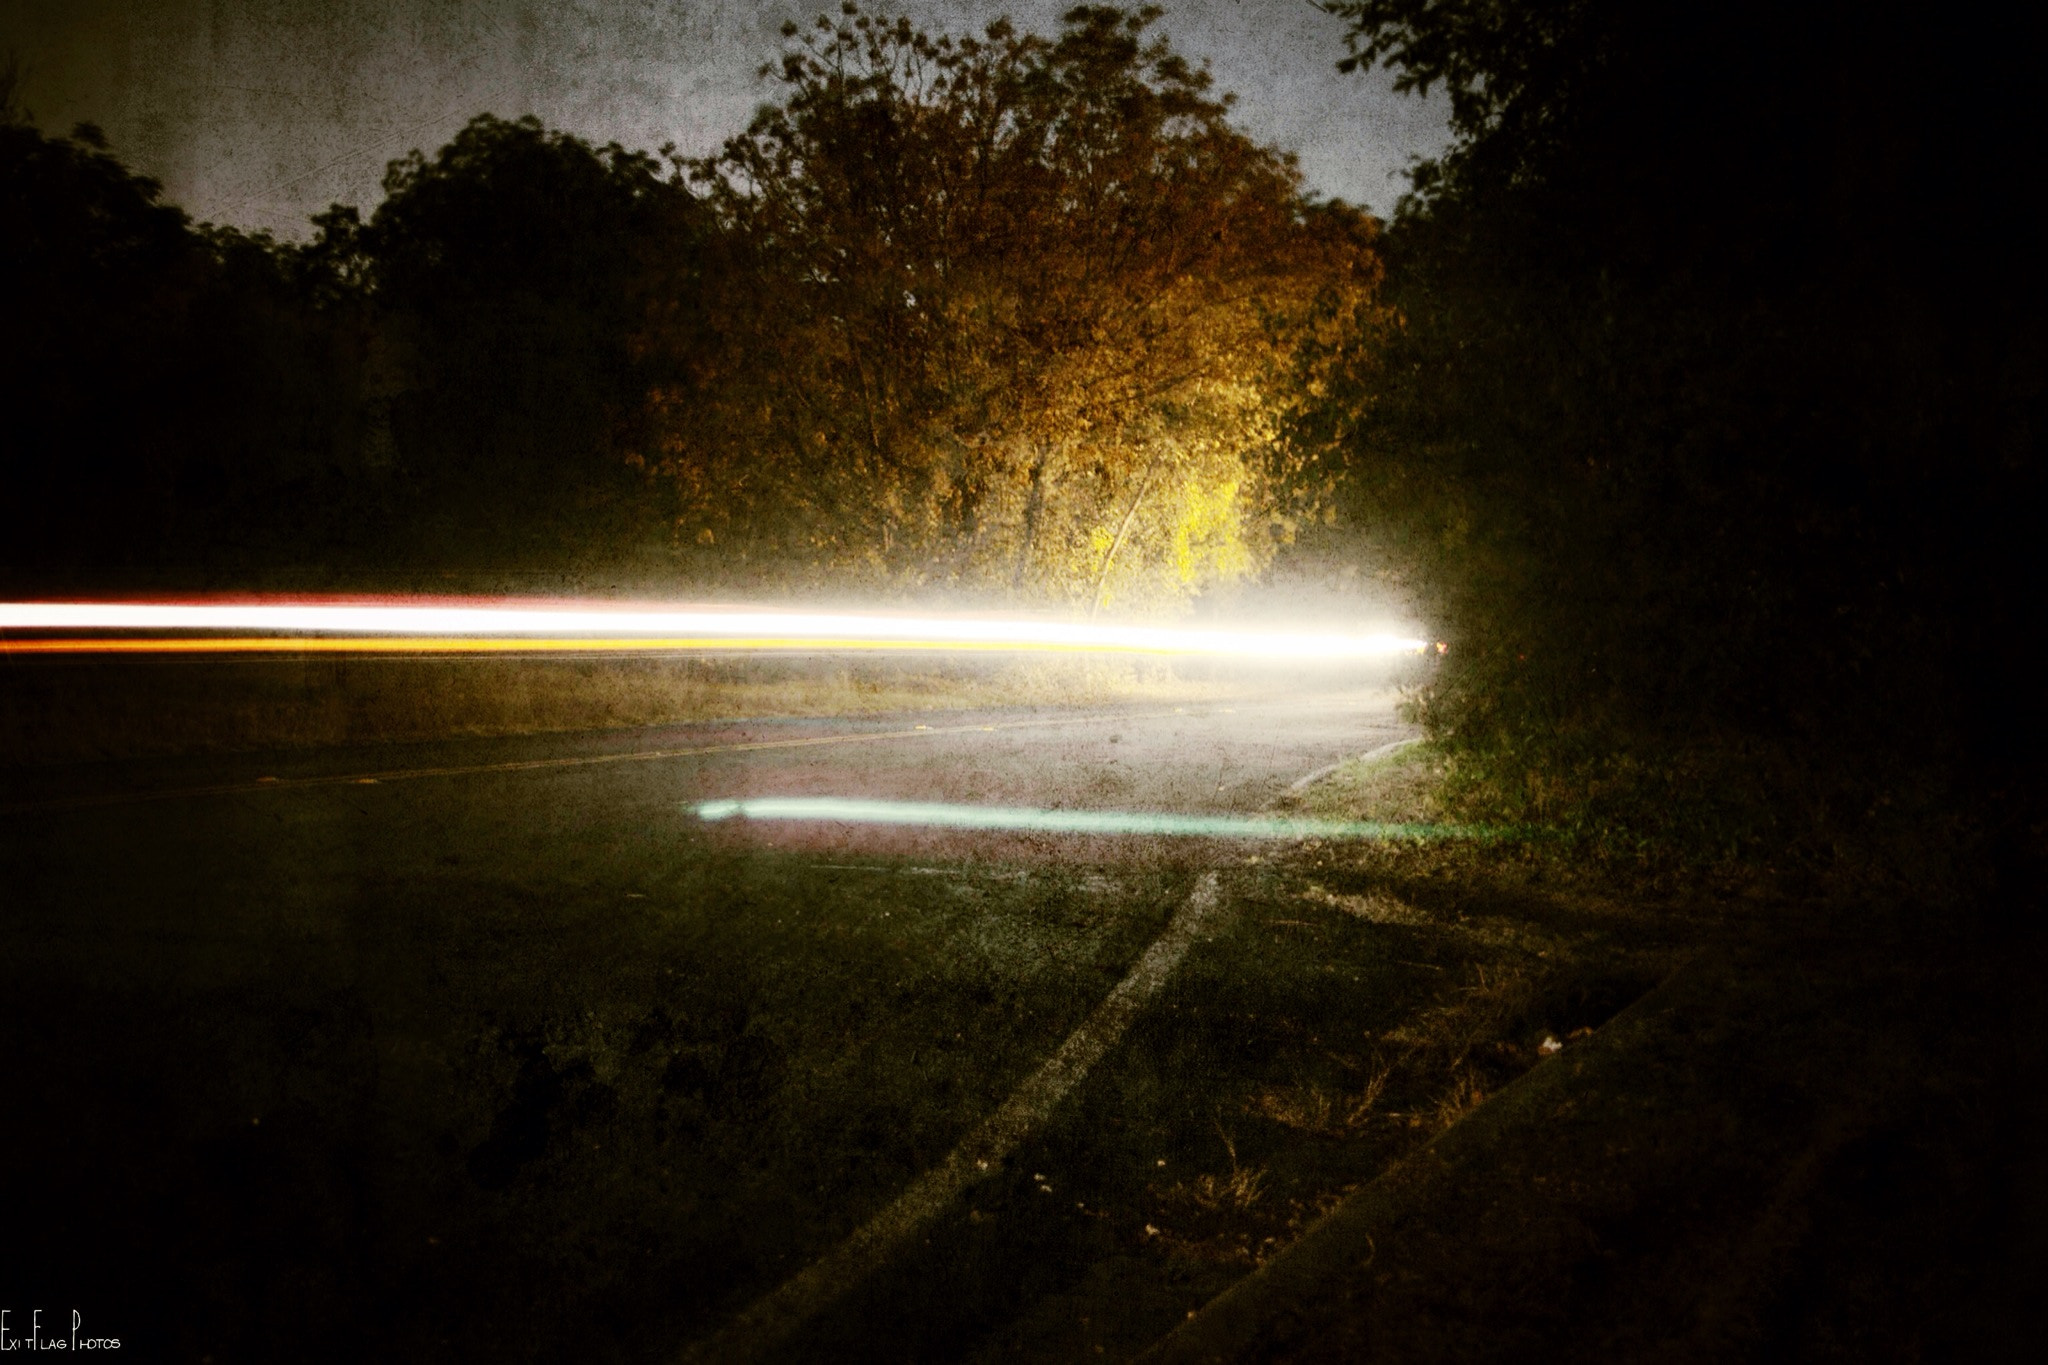 Photograph Late Night Drive by Austin Hansen on 500px